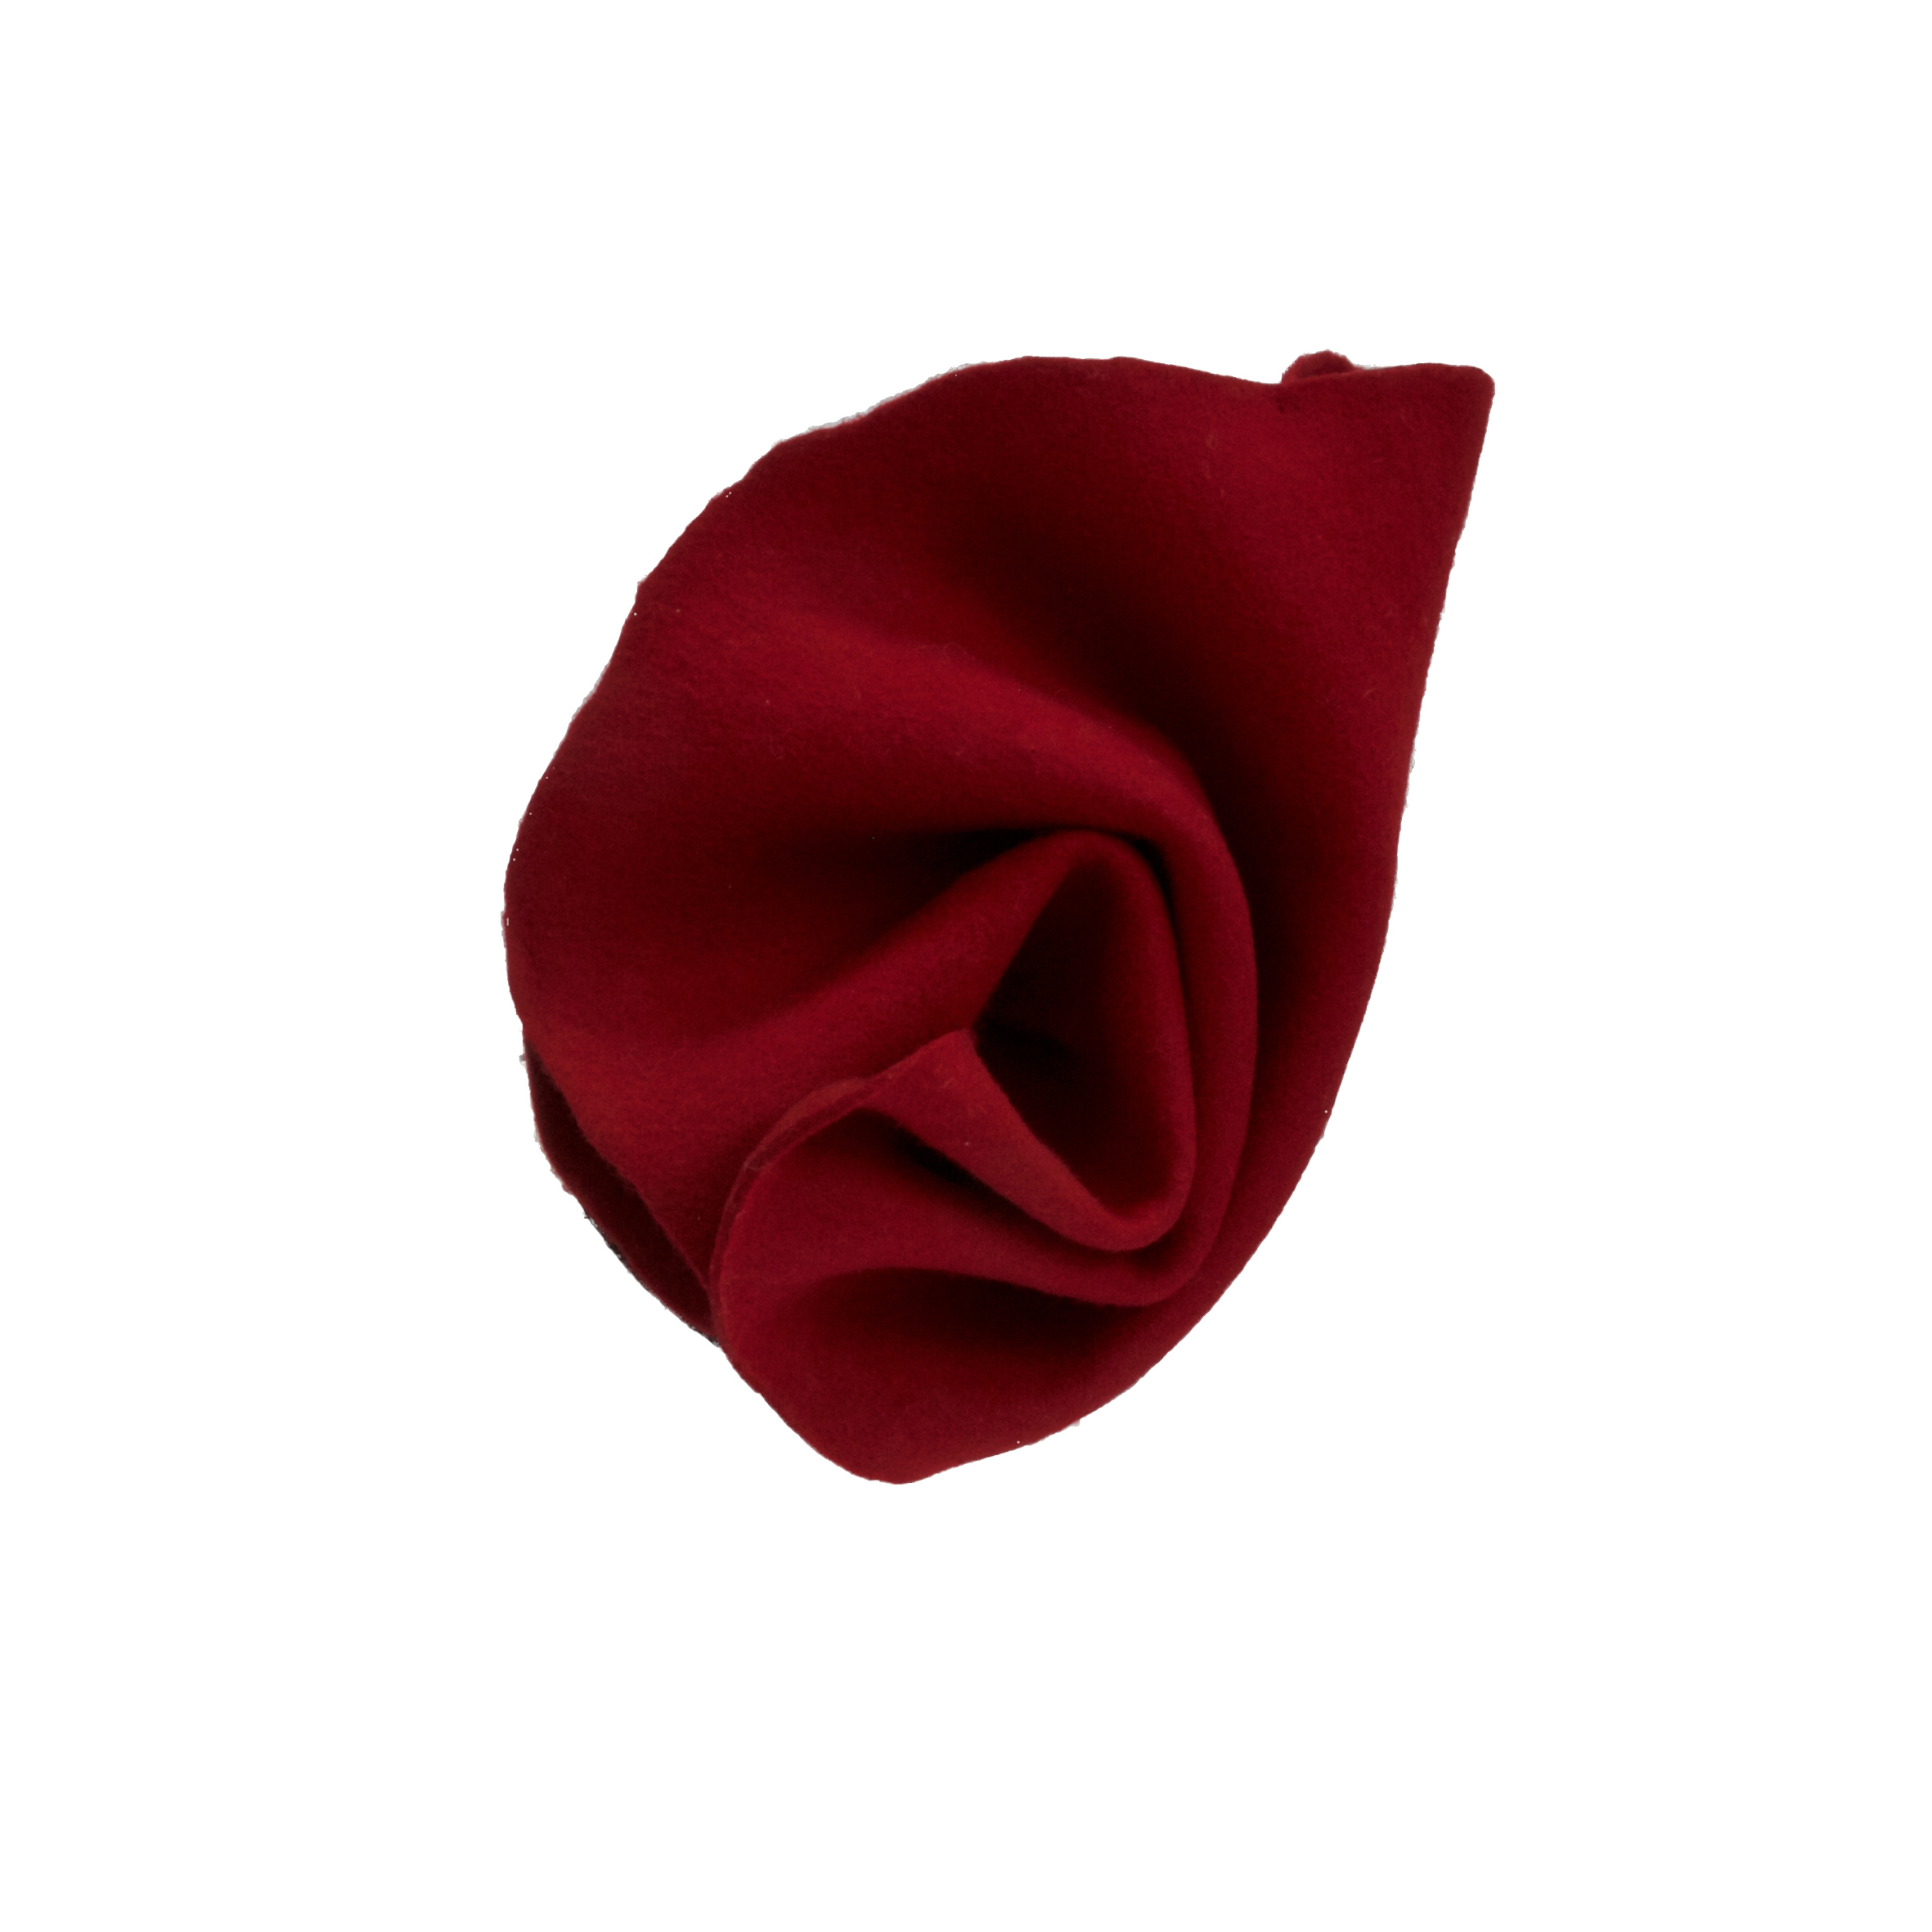 TULIP - £60  Red twisted headpiece which sits on small disk.